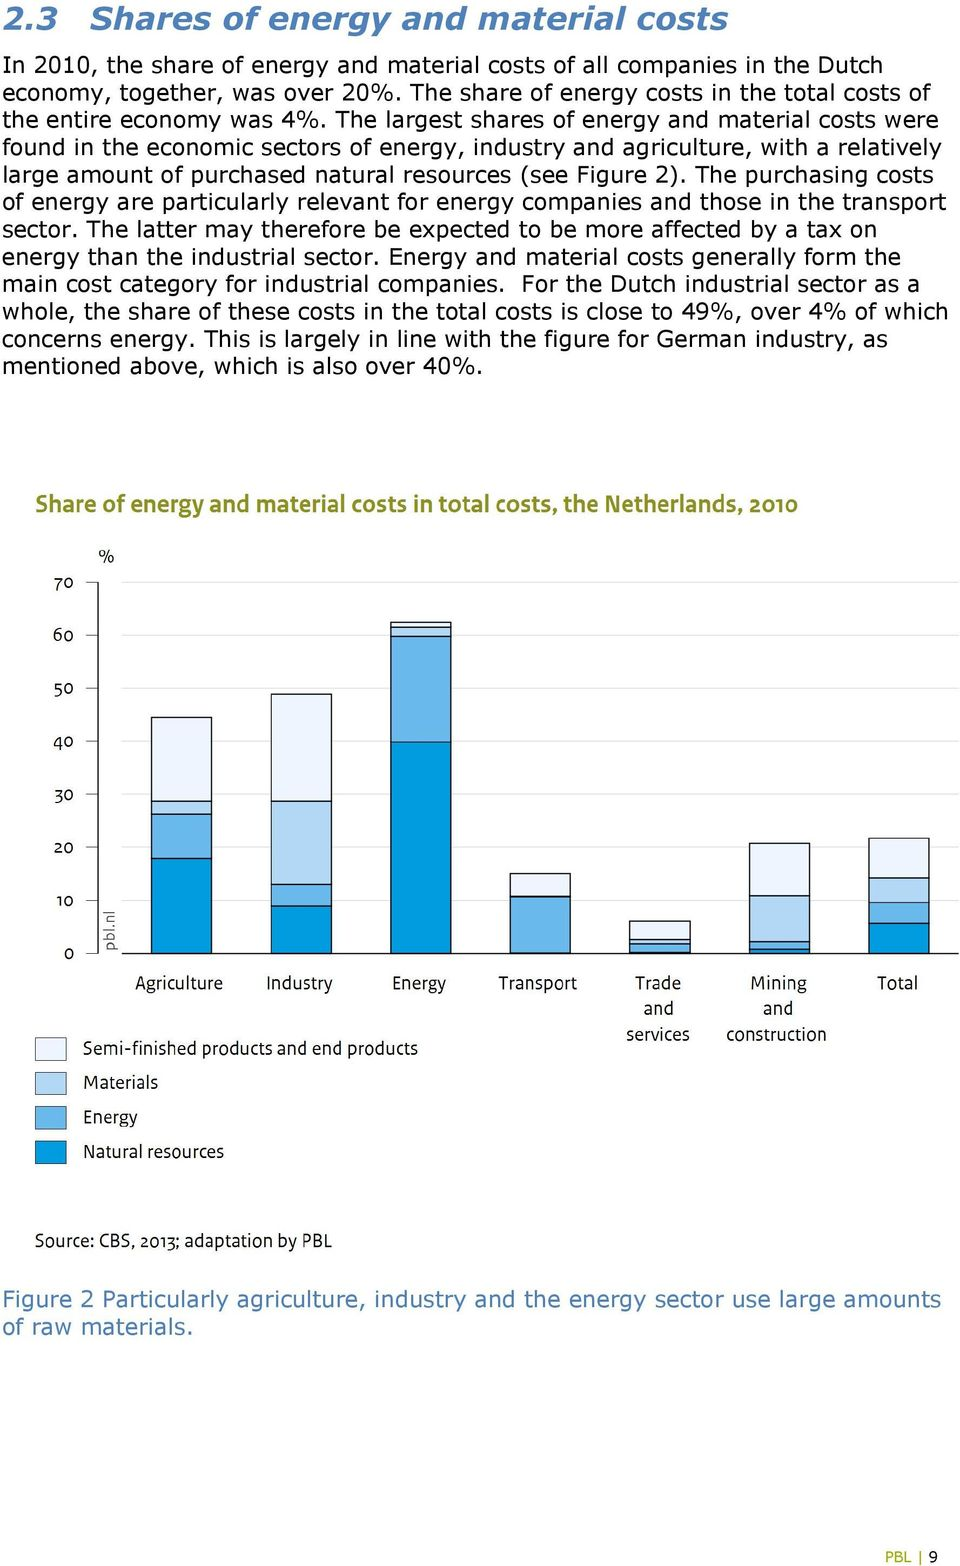 The largest shares of energy and material costs were found in the economic sectors of energy, industry and agriculture, with a relatively large amount of purchased natural resources (see Figure 2).